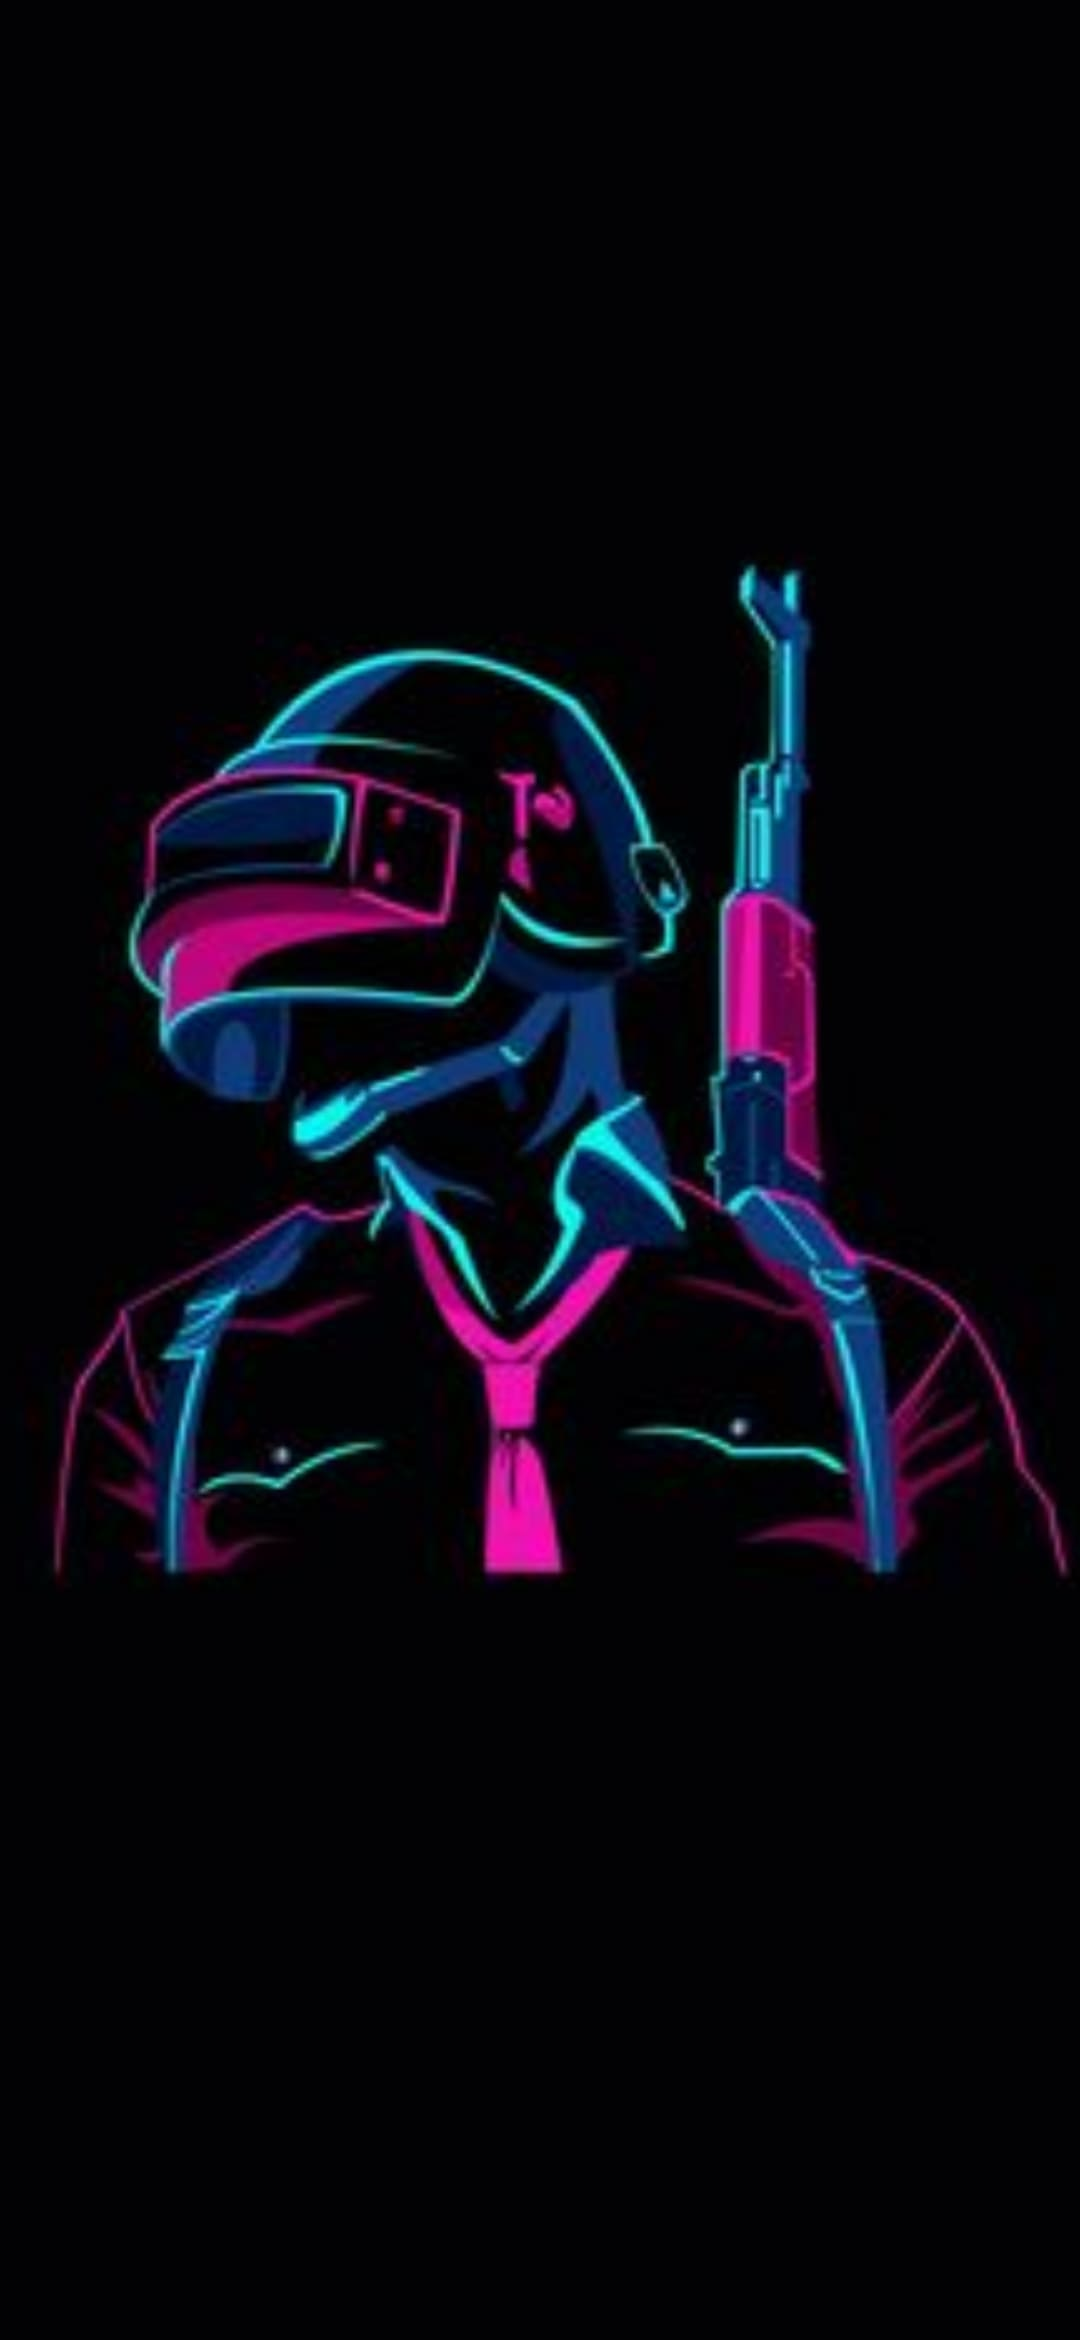 Pubg Latest Wallpaper Gambar Line Art Neon HD